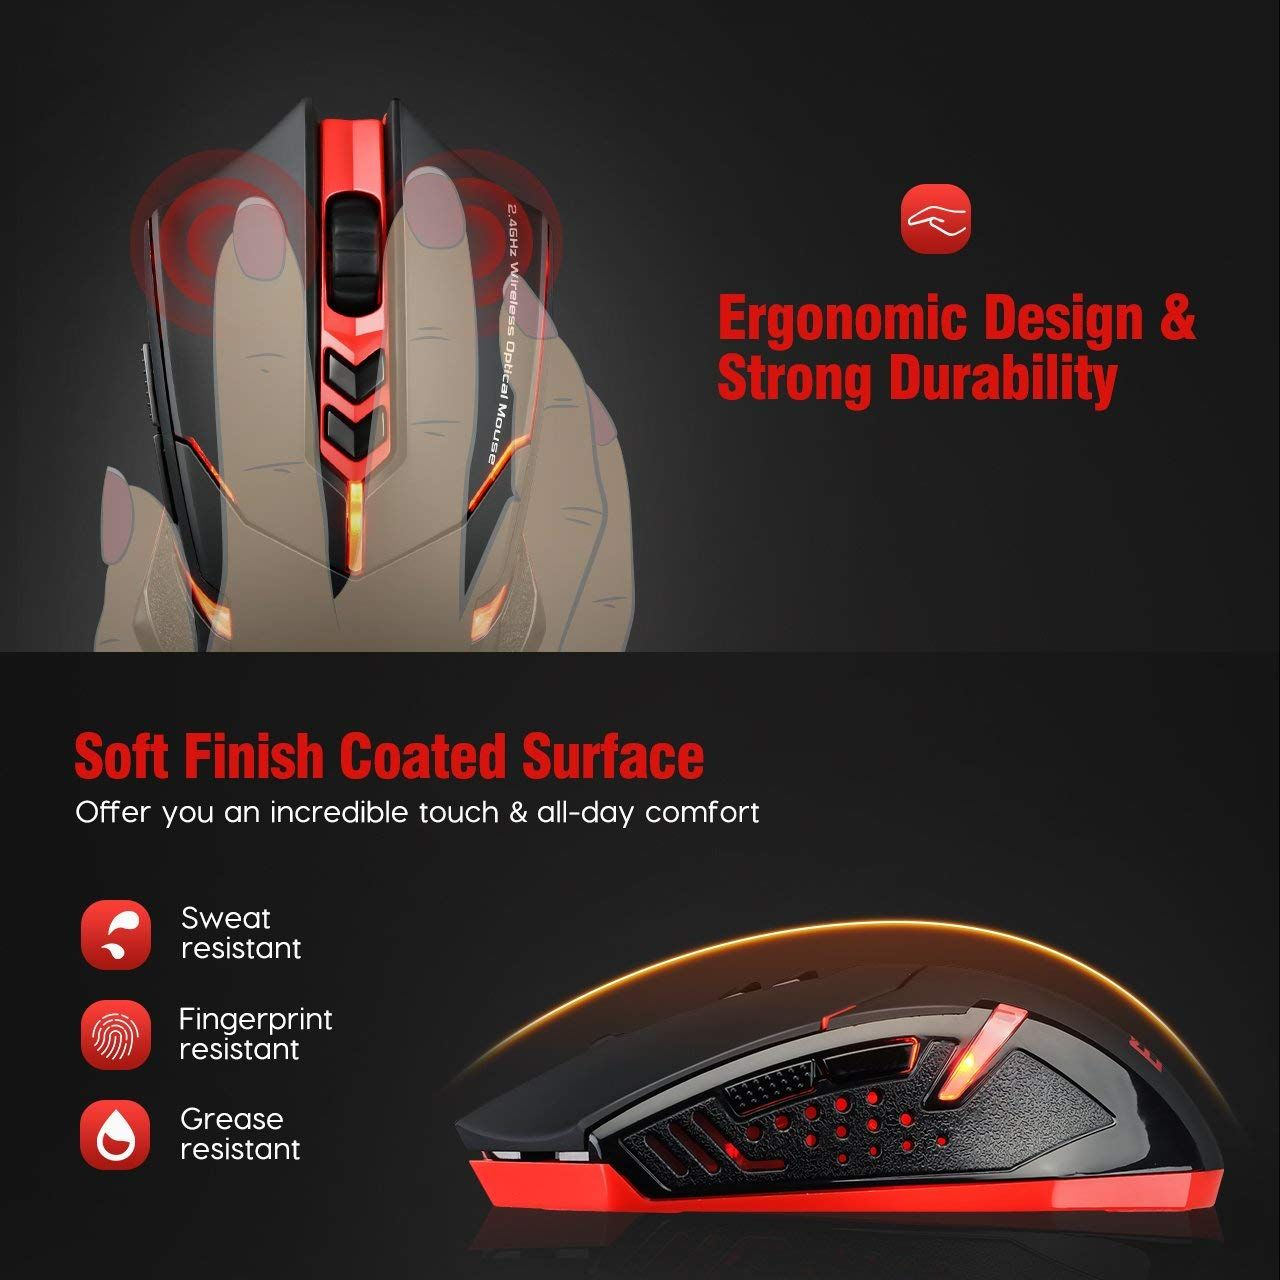 PICTEK Wireless Gaming Mouse for $15 99 ($4 off) ($34 13 off